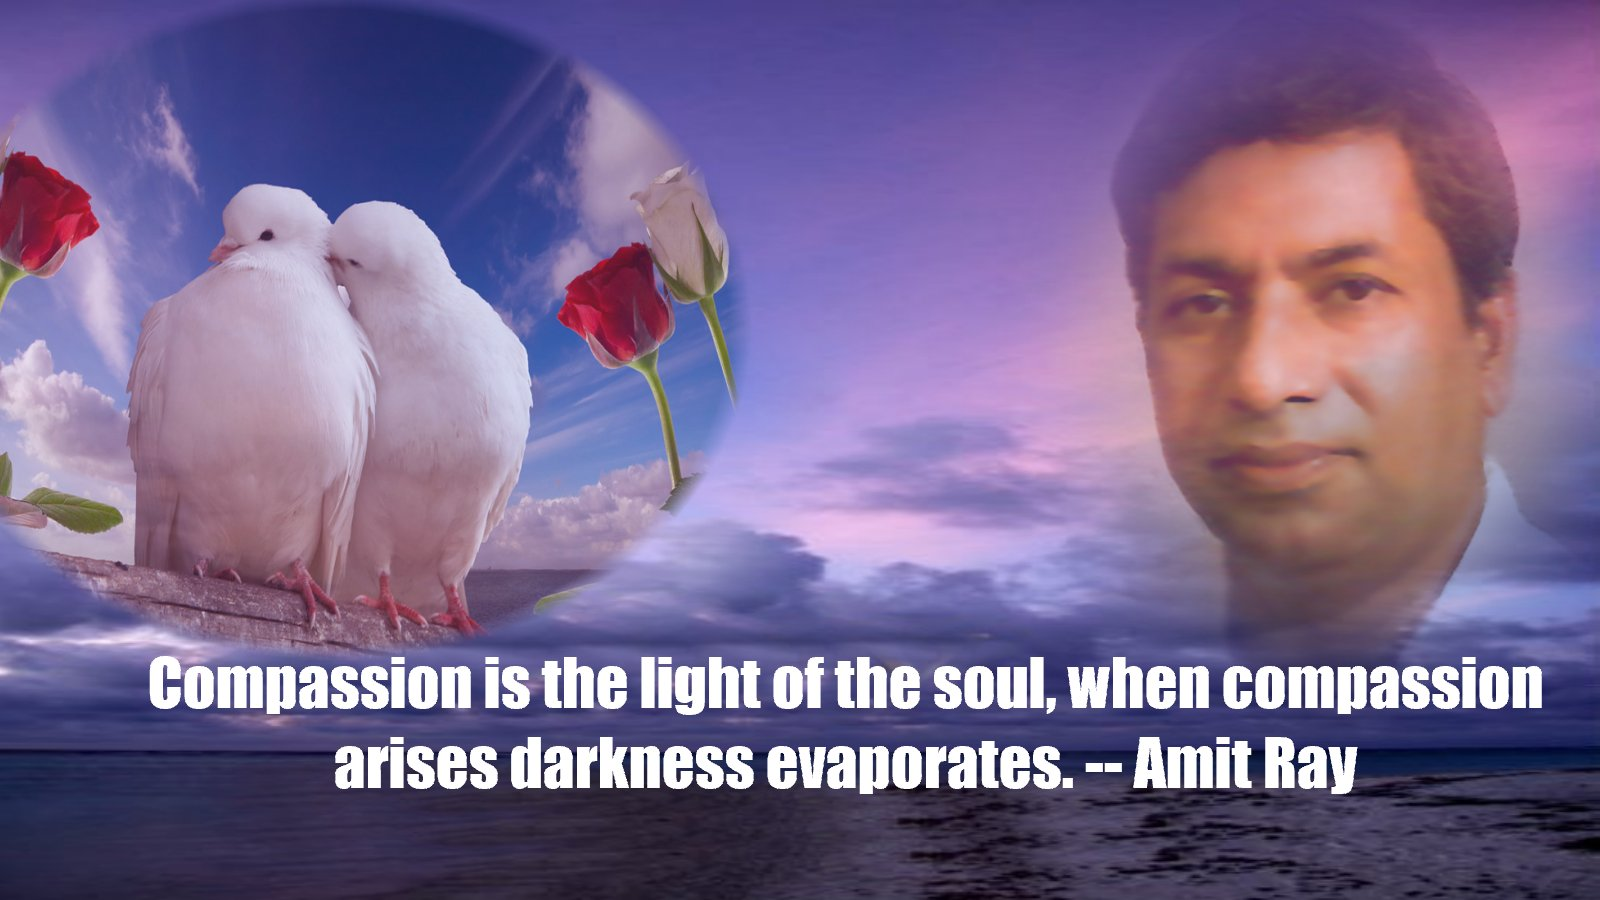 Compassion the Light of the Soul | Amit Ray Teachings